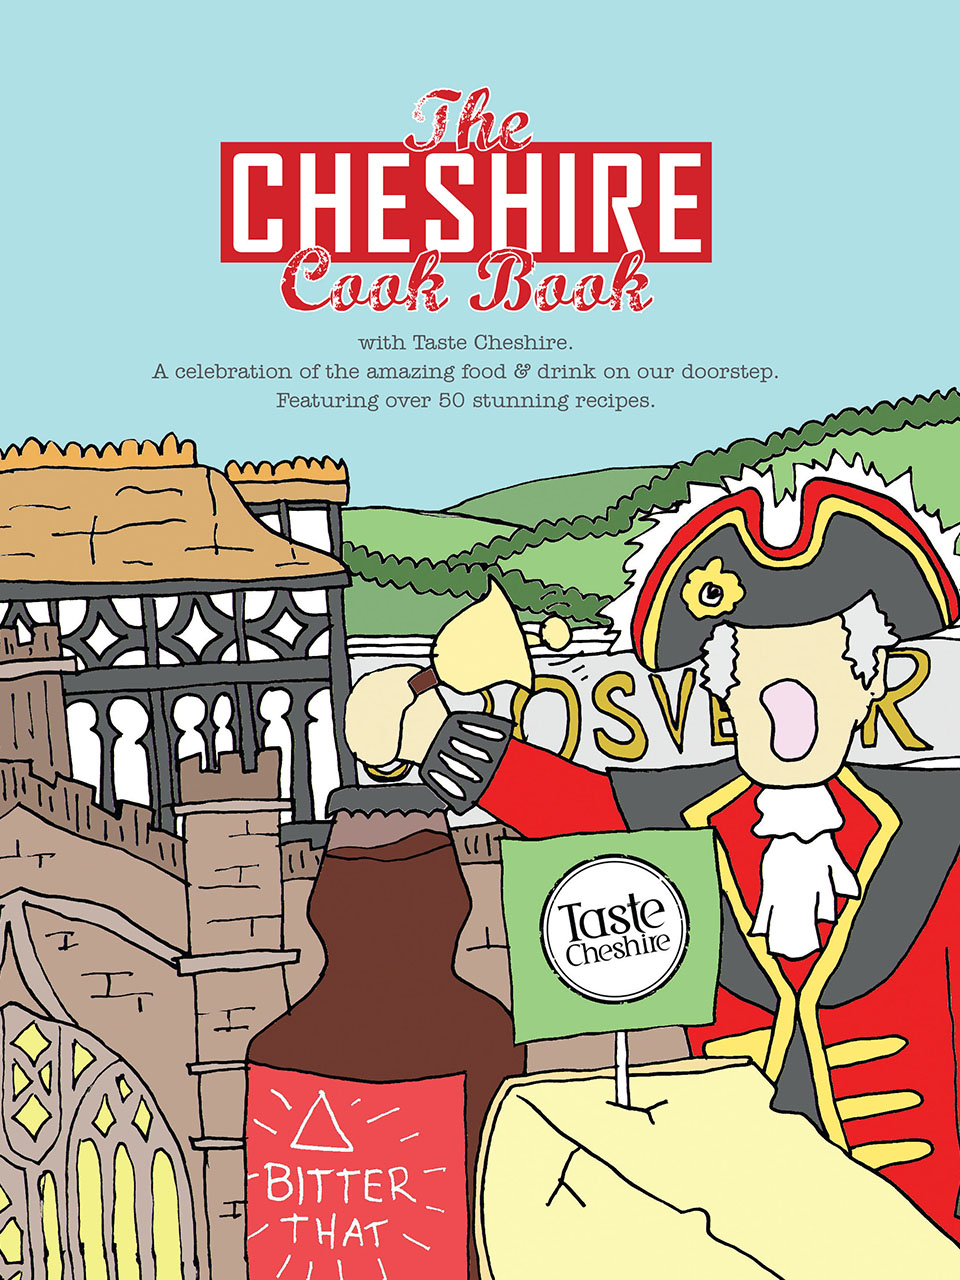 The Cheshire Cook Book